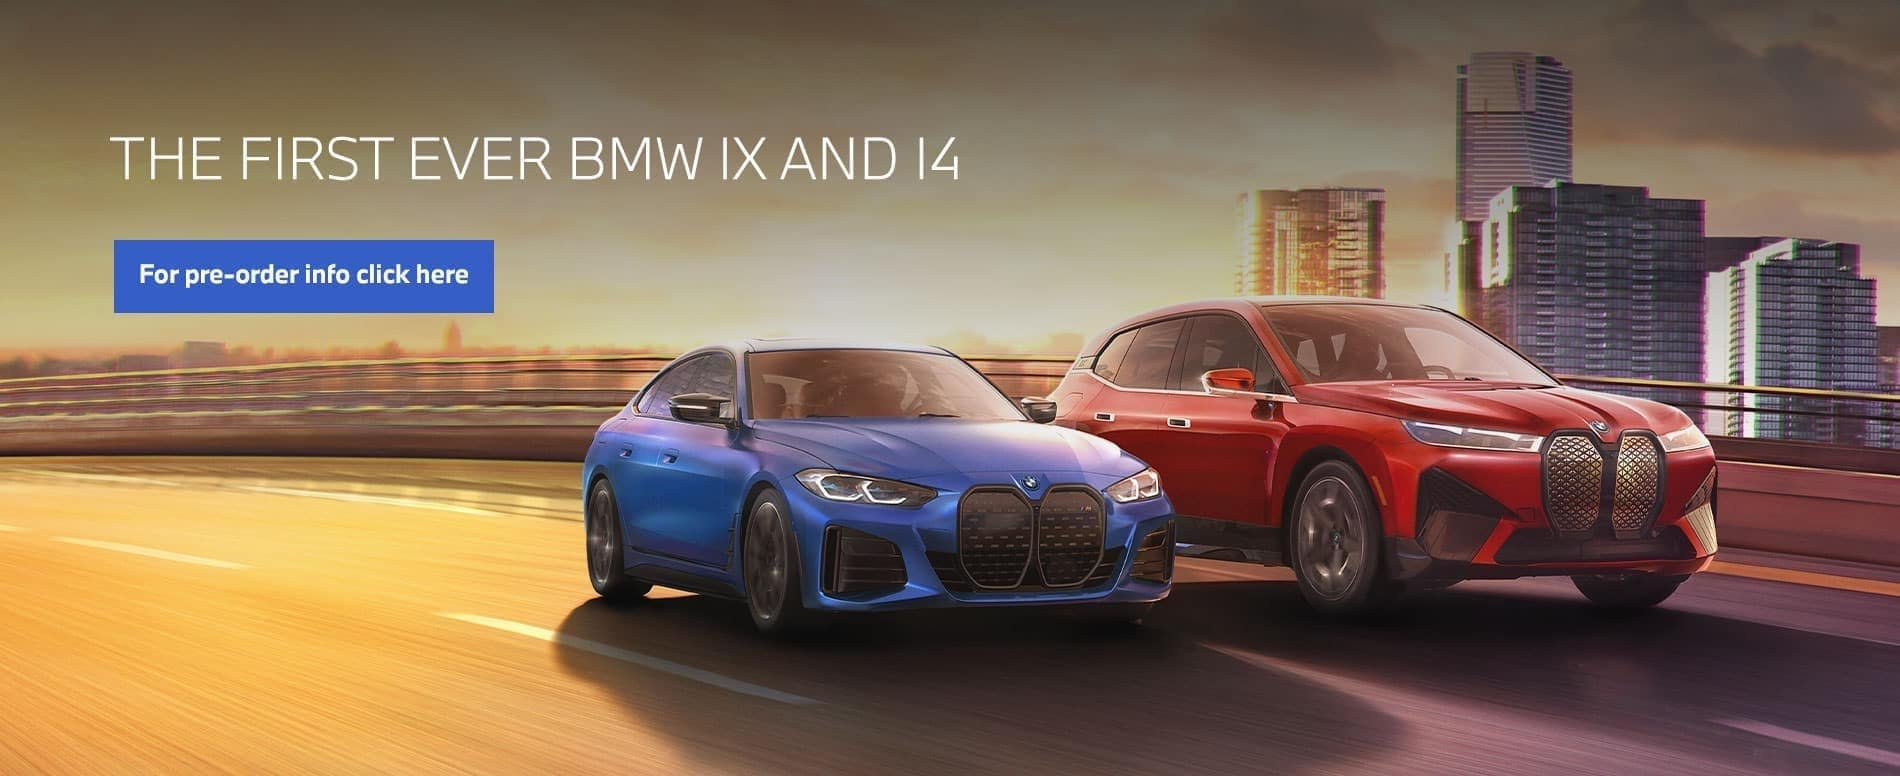 THE FIRST EVER BMW IX AND 14